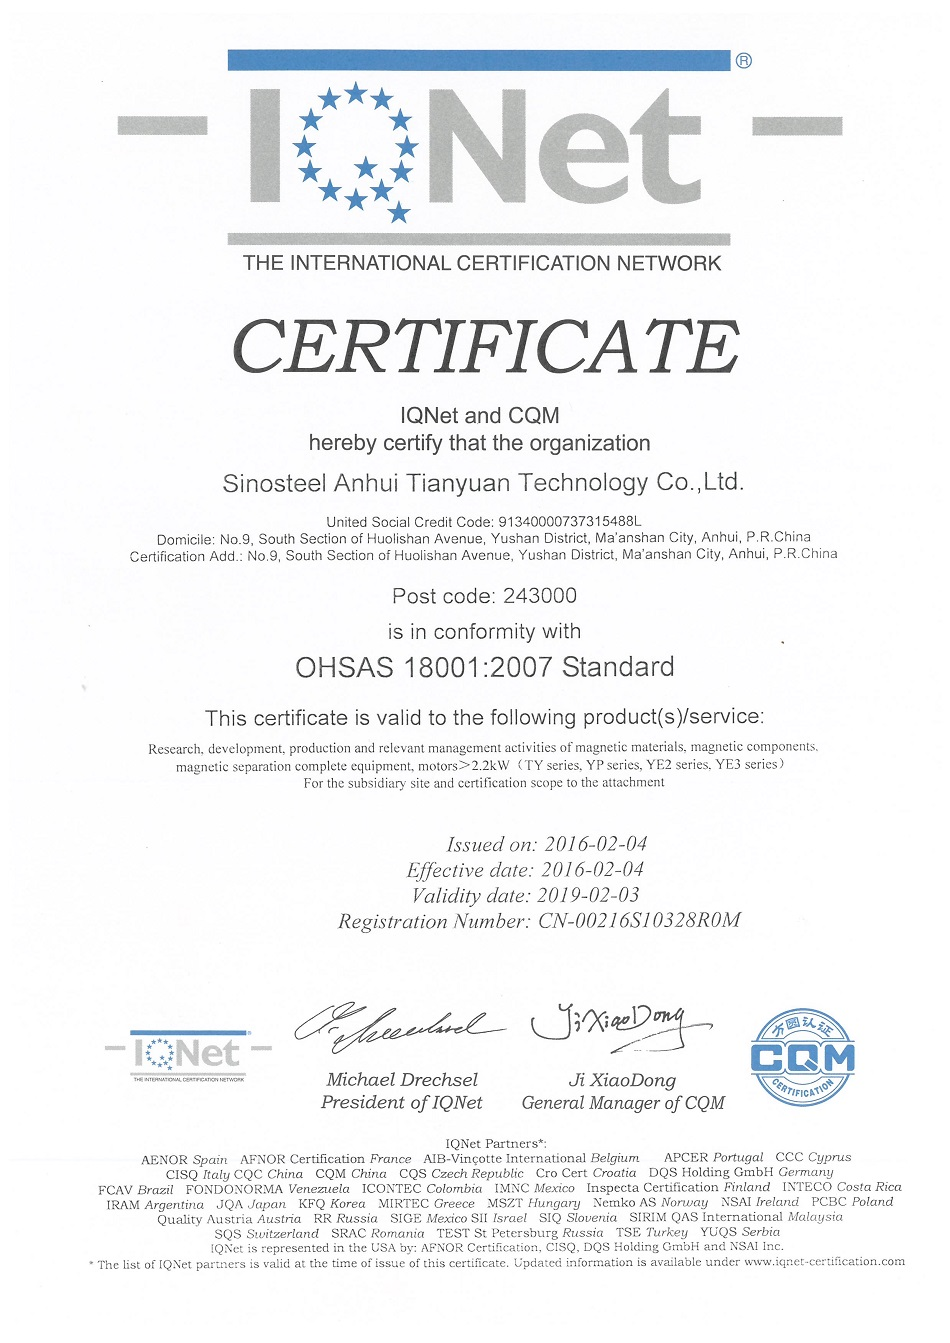 OHSAS certificate for SINOSTEEL